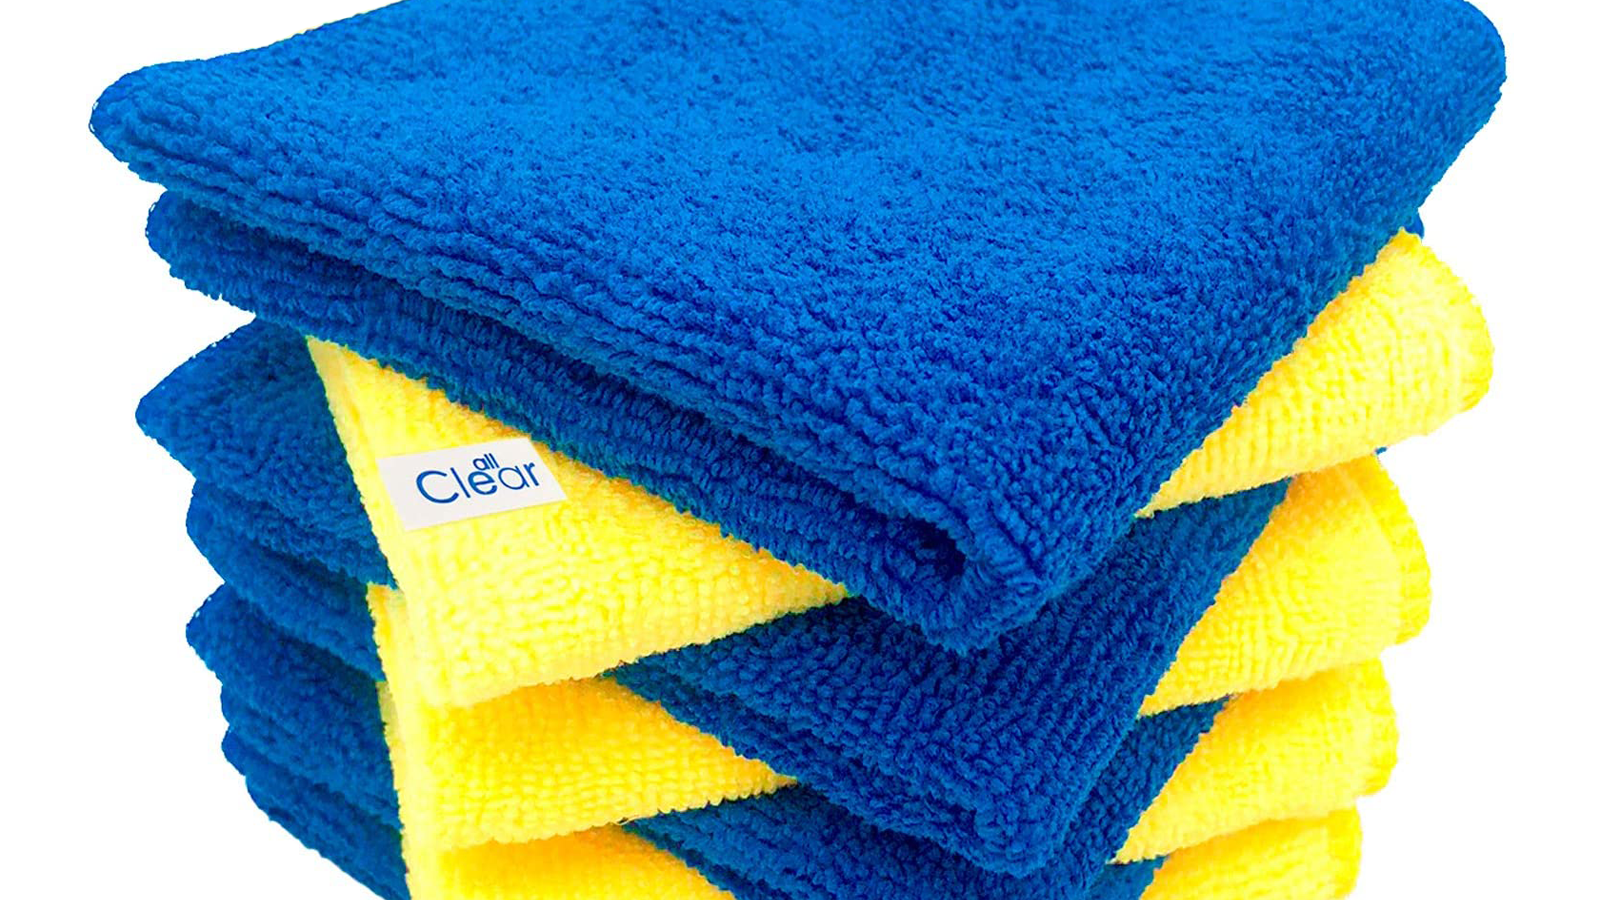 Make Cleaning Around the House Easier with These Microfiber Cleaning Cloths